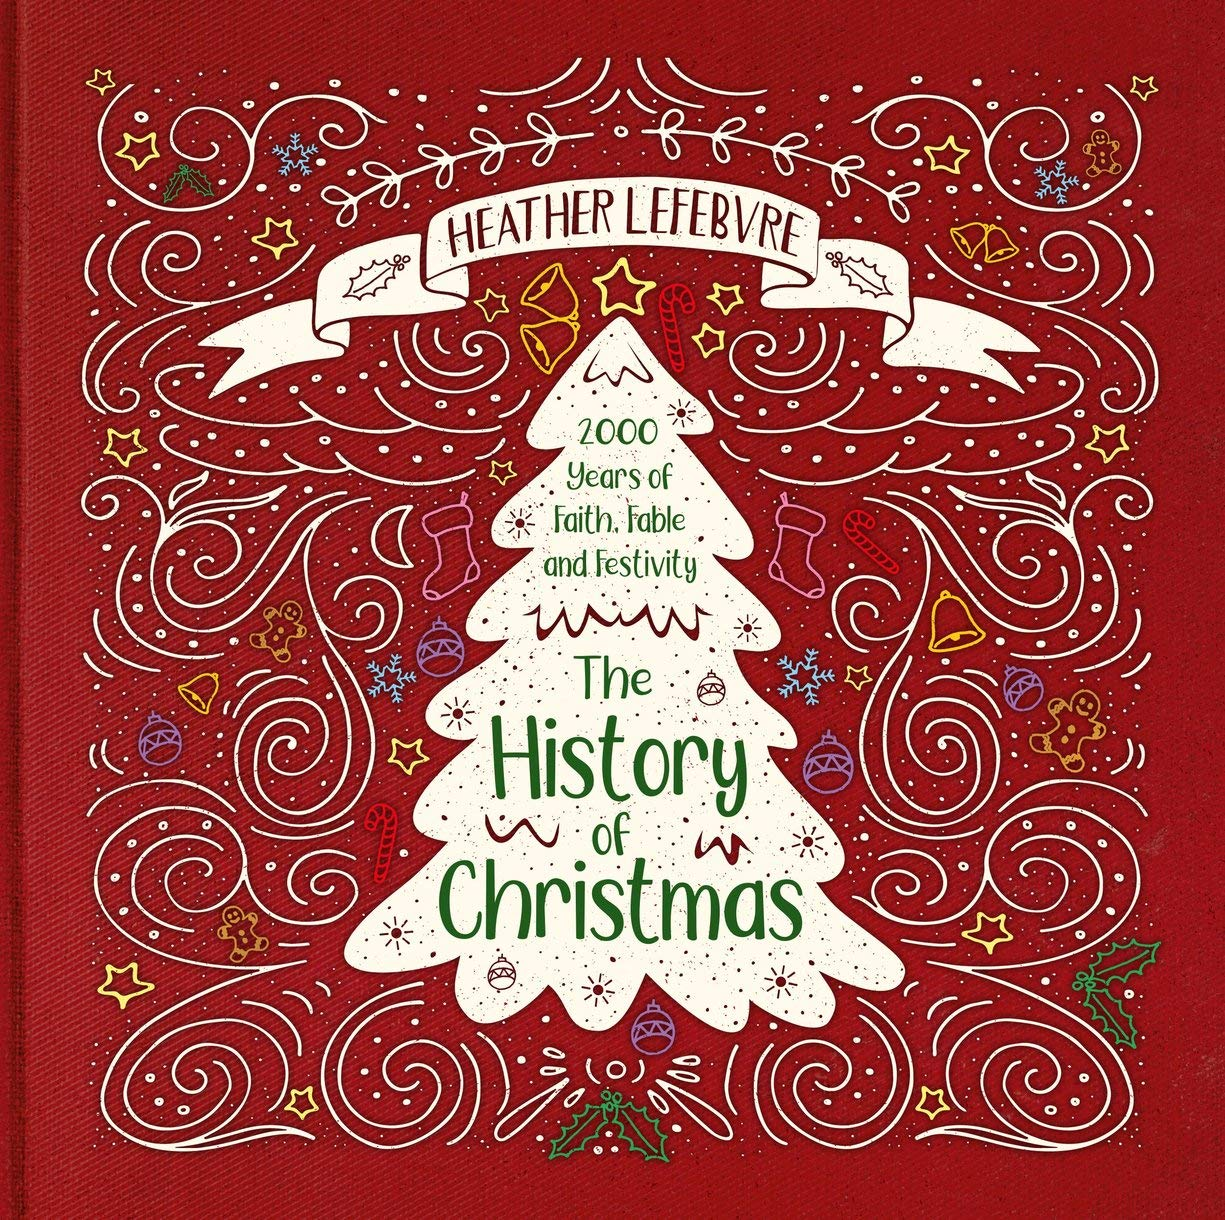 The History Of Christmas.The History Of Christmas 2 000 Years Of Faith Fable And